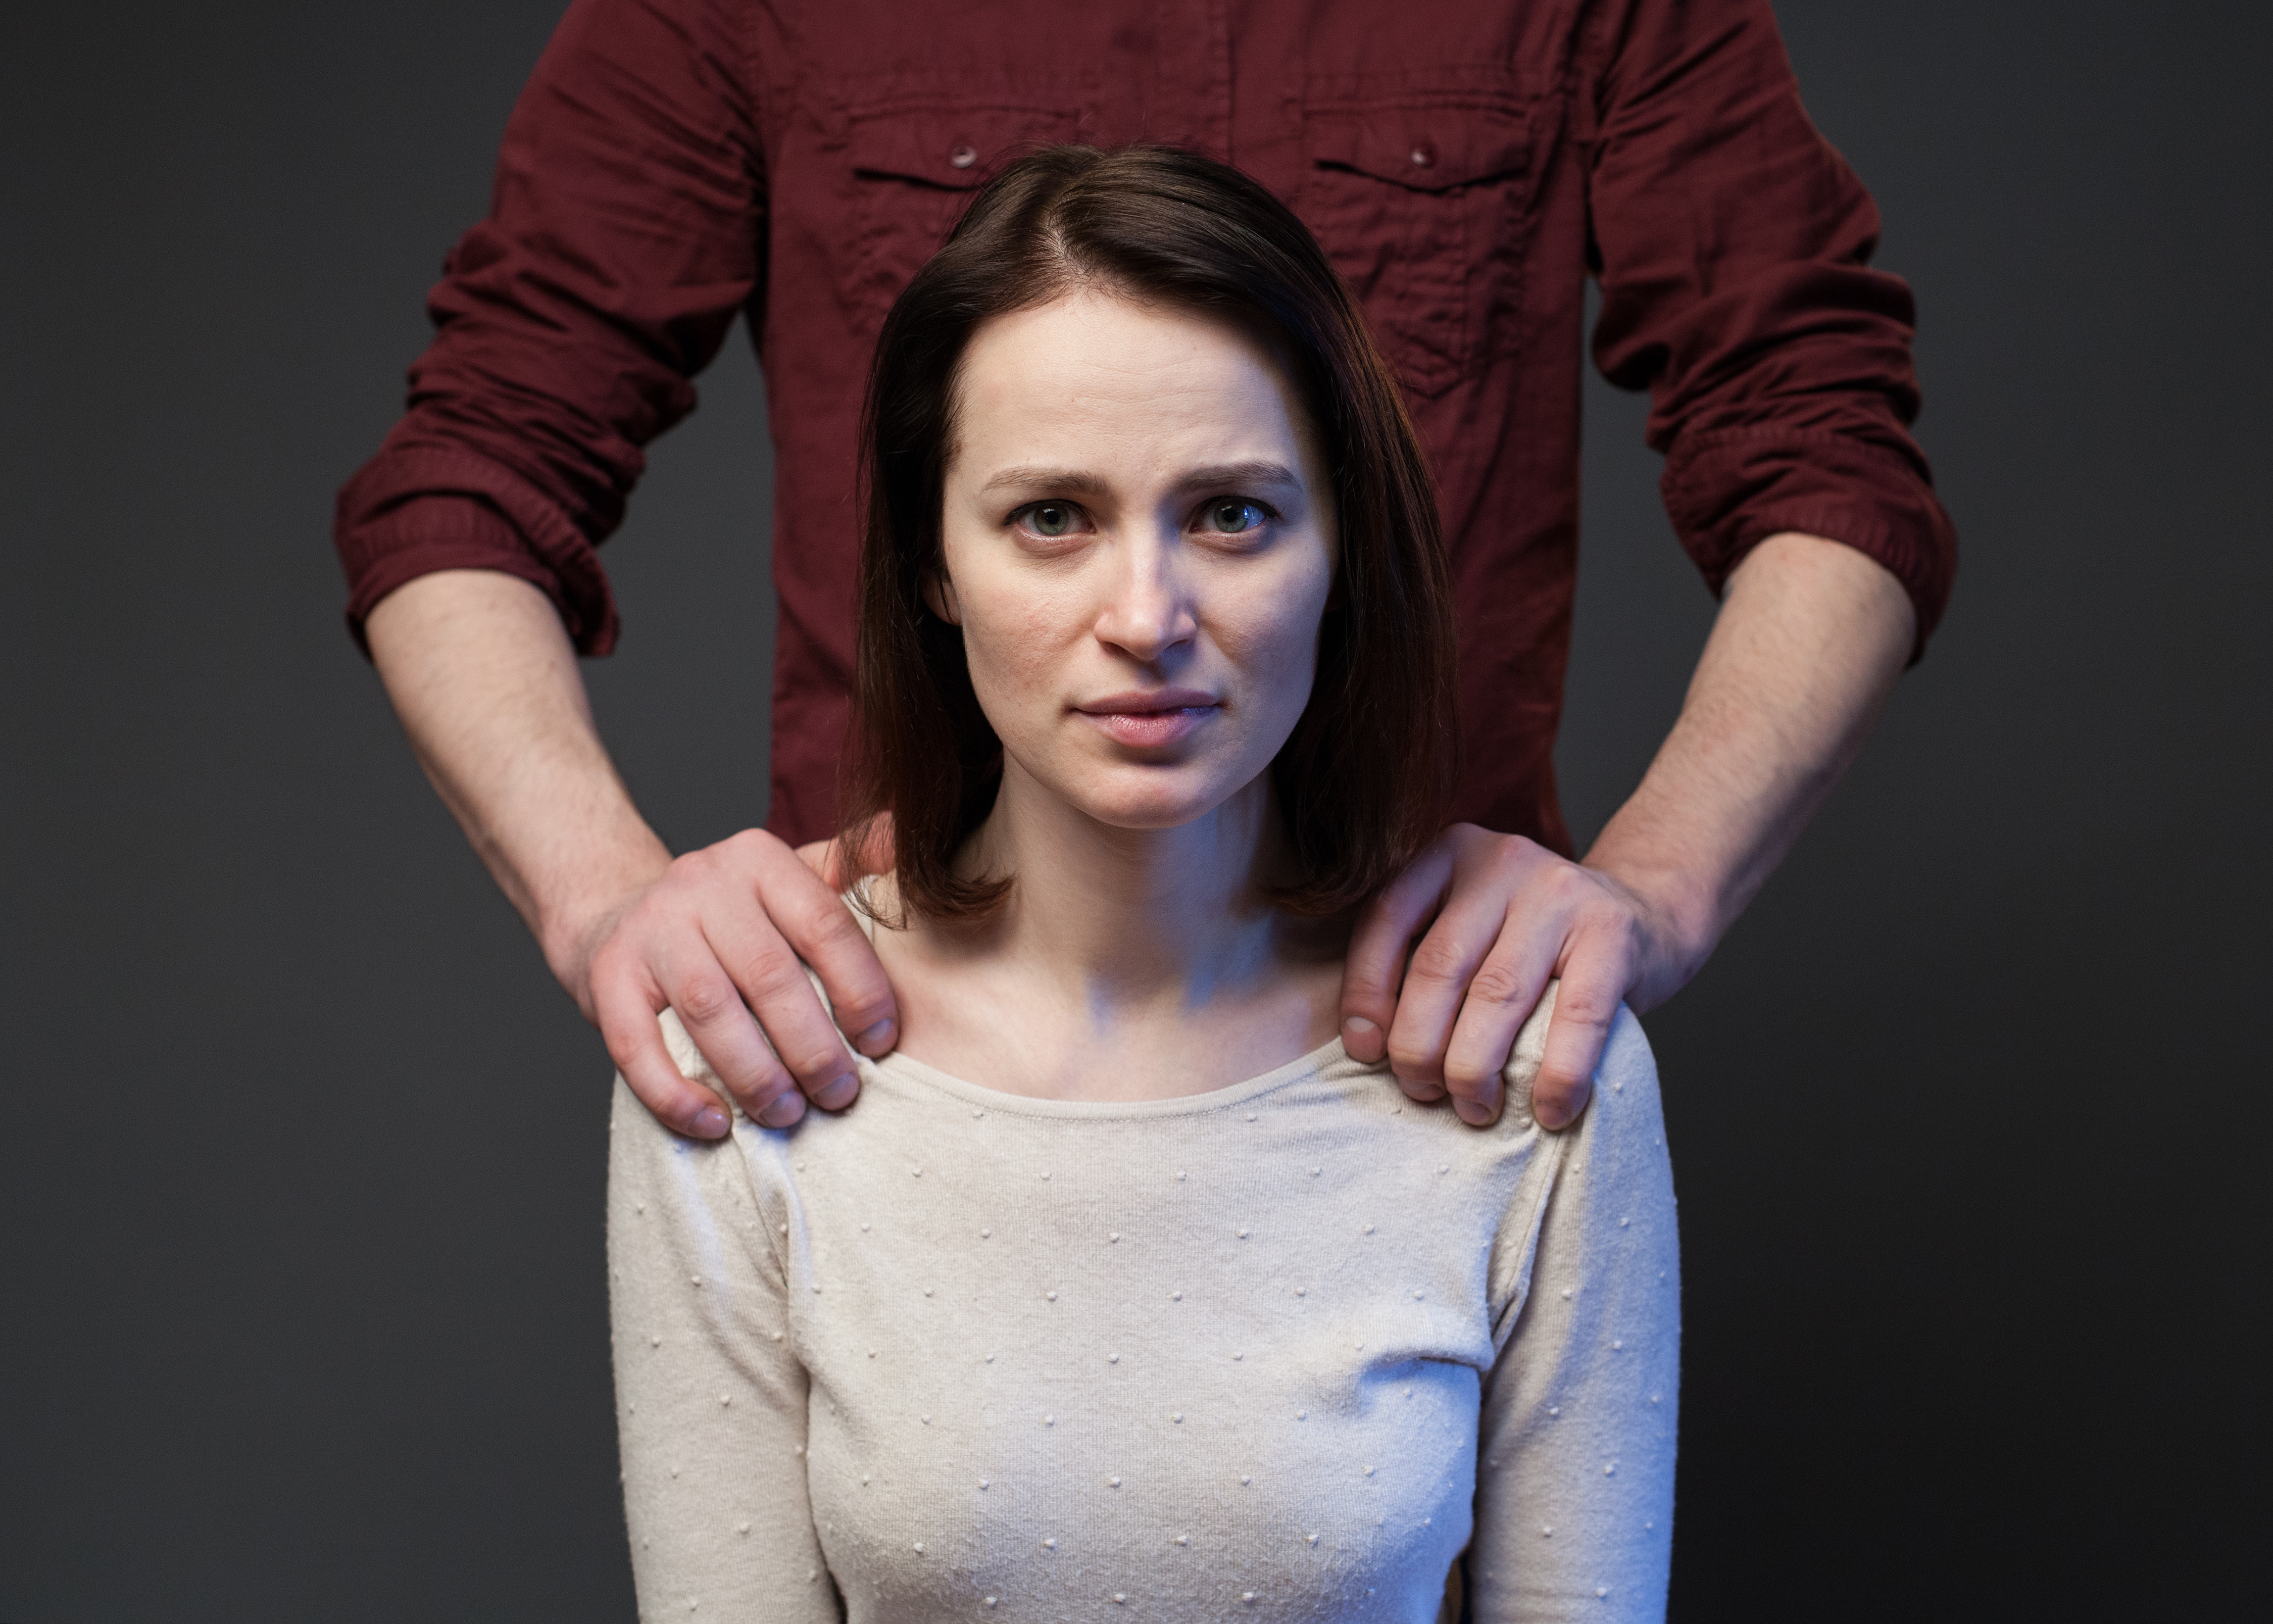 Family abuse – man's hands keeping woman's shoulders, gray background